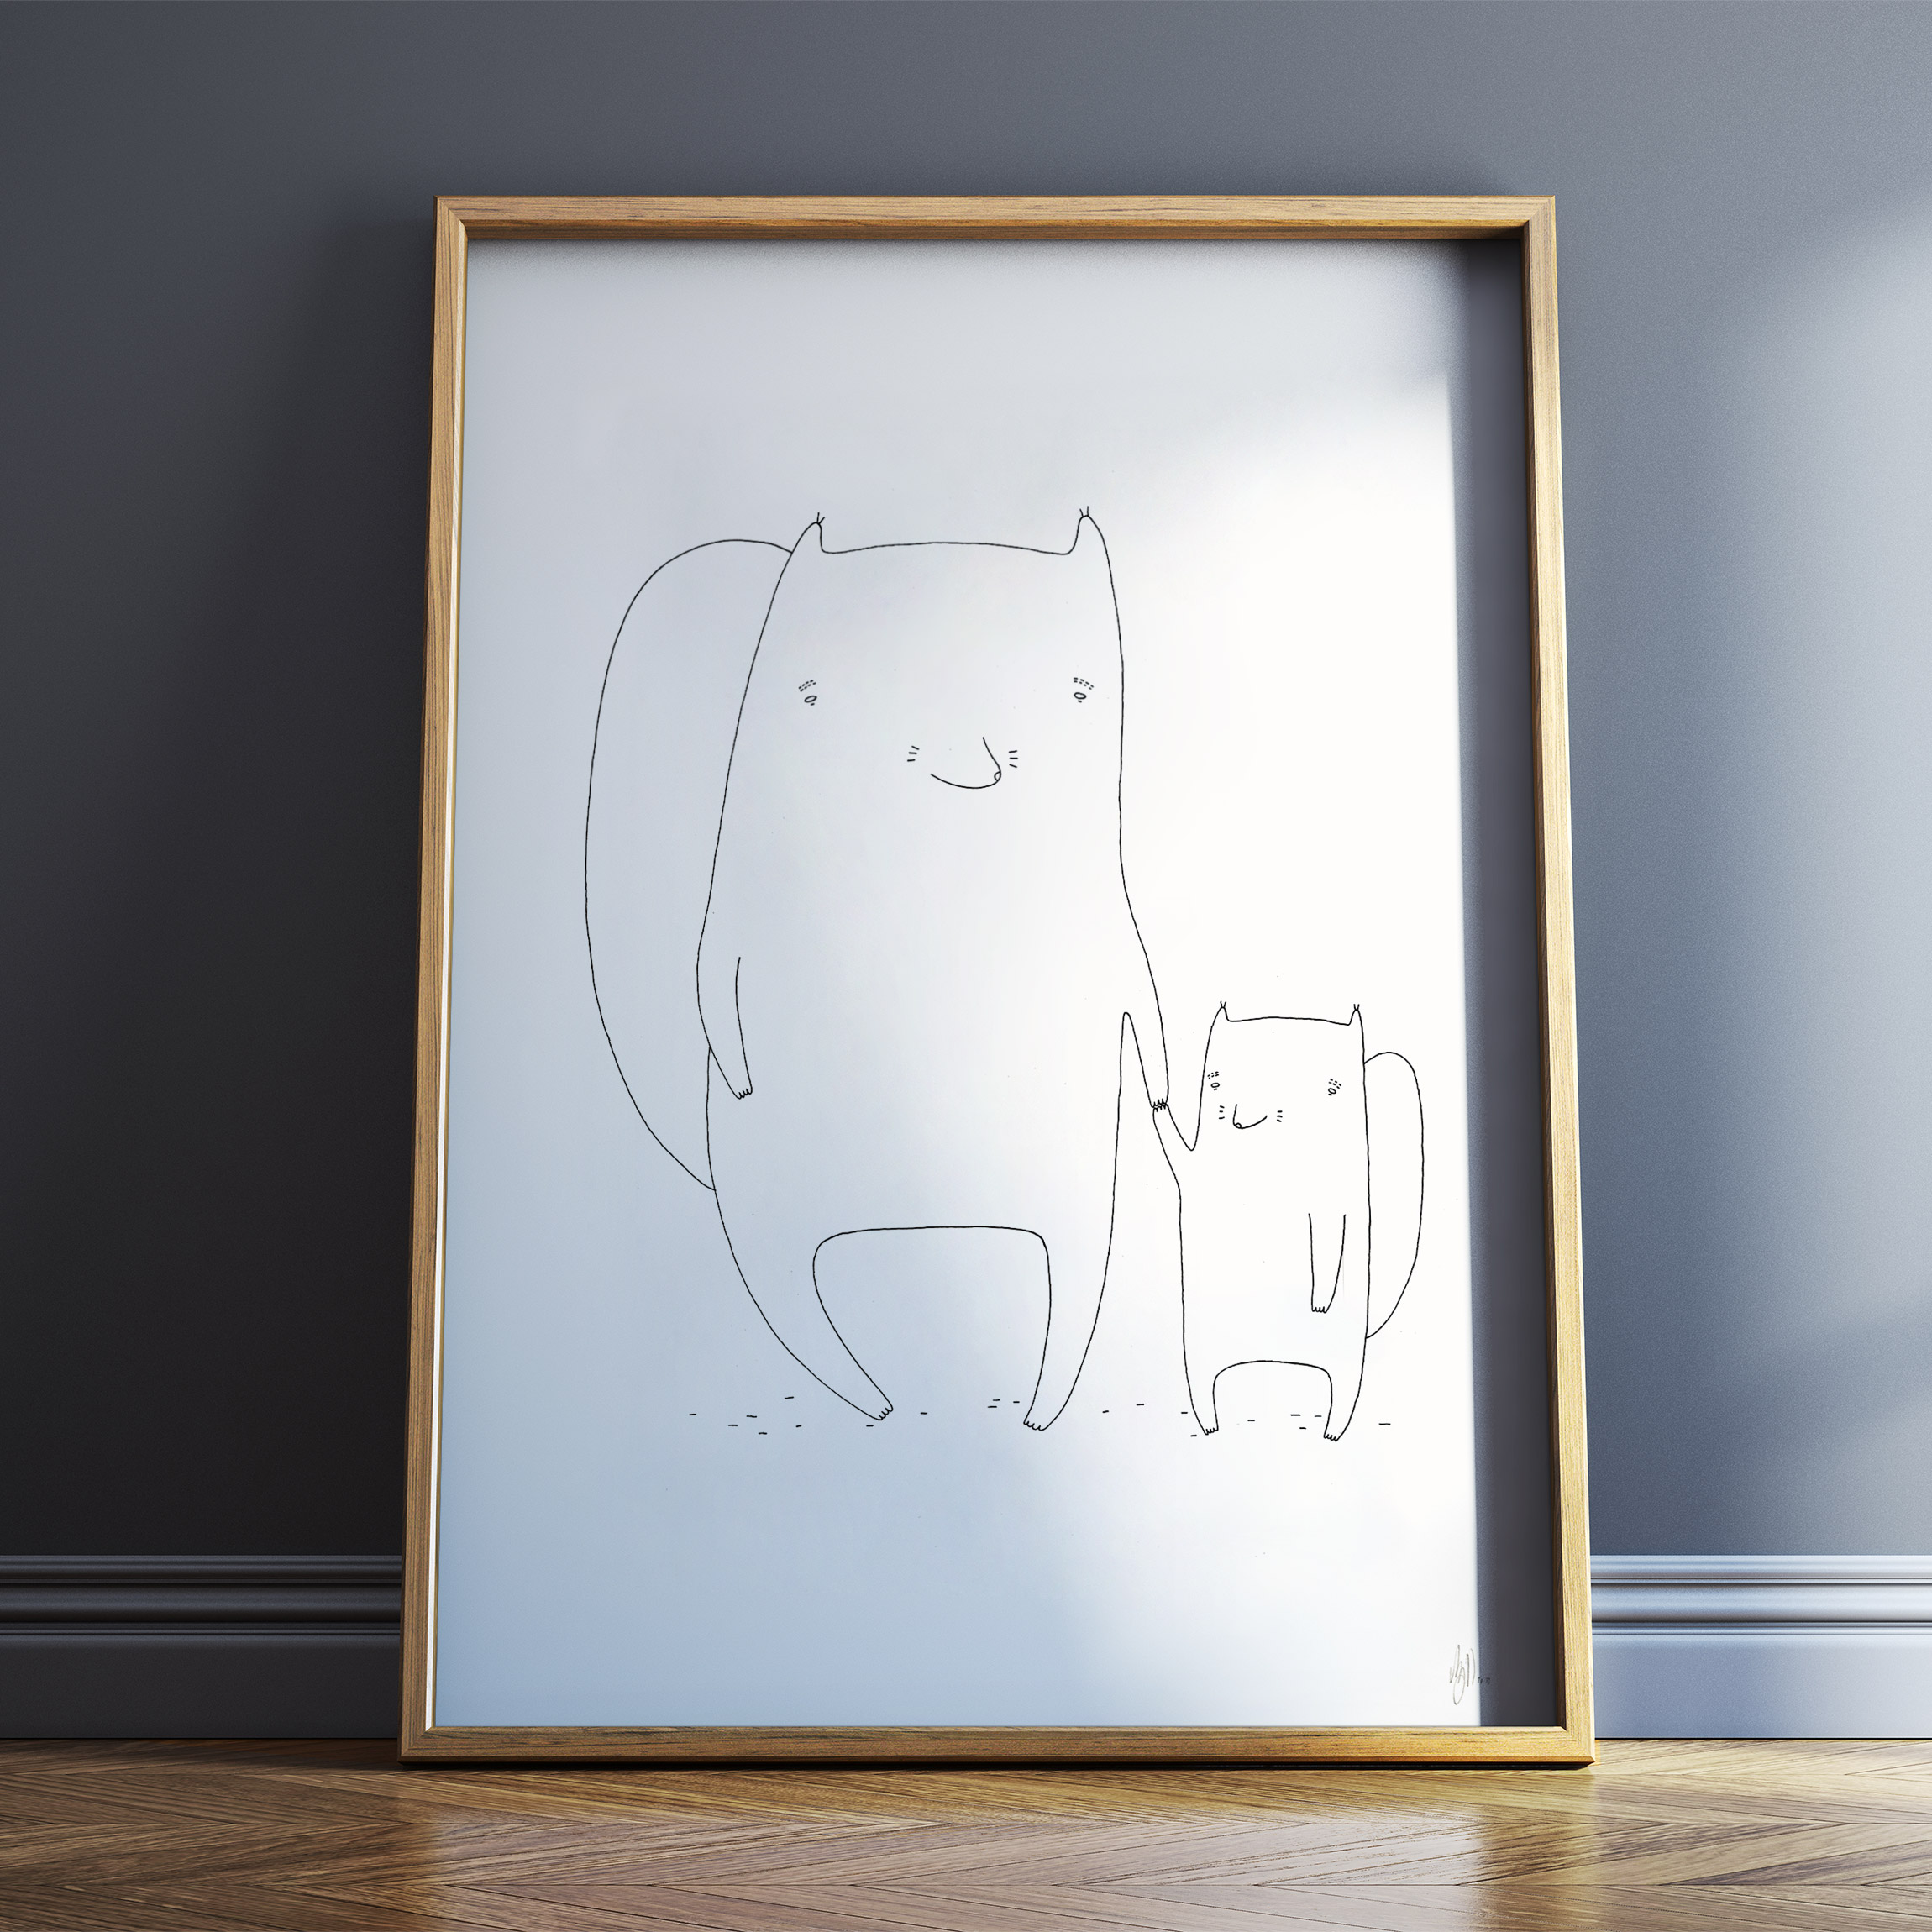 art-prints, giclee, animal, family-friendly, illustrative, minimalistic, animals, children, wildlife, black, white, ink, amusing, black-and-white, copenhagen, cute, danish, decorative, design, interior, interior-design, love, modern, modern-art, nordic, posters, prints, scandinavien, Buy original high quality art. Paintings, drawings, limited edition prints & posters by talented artists.